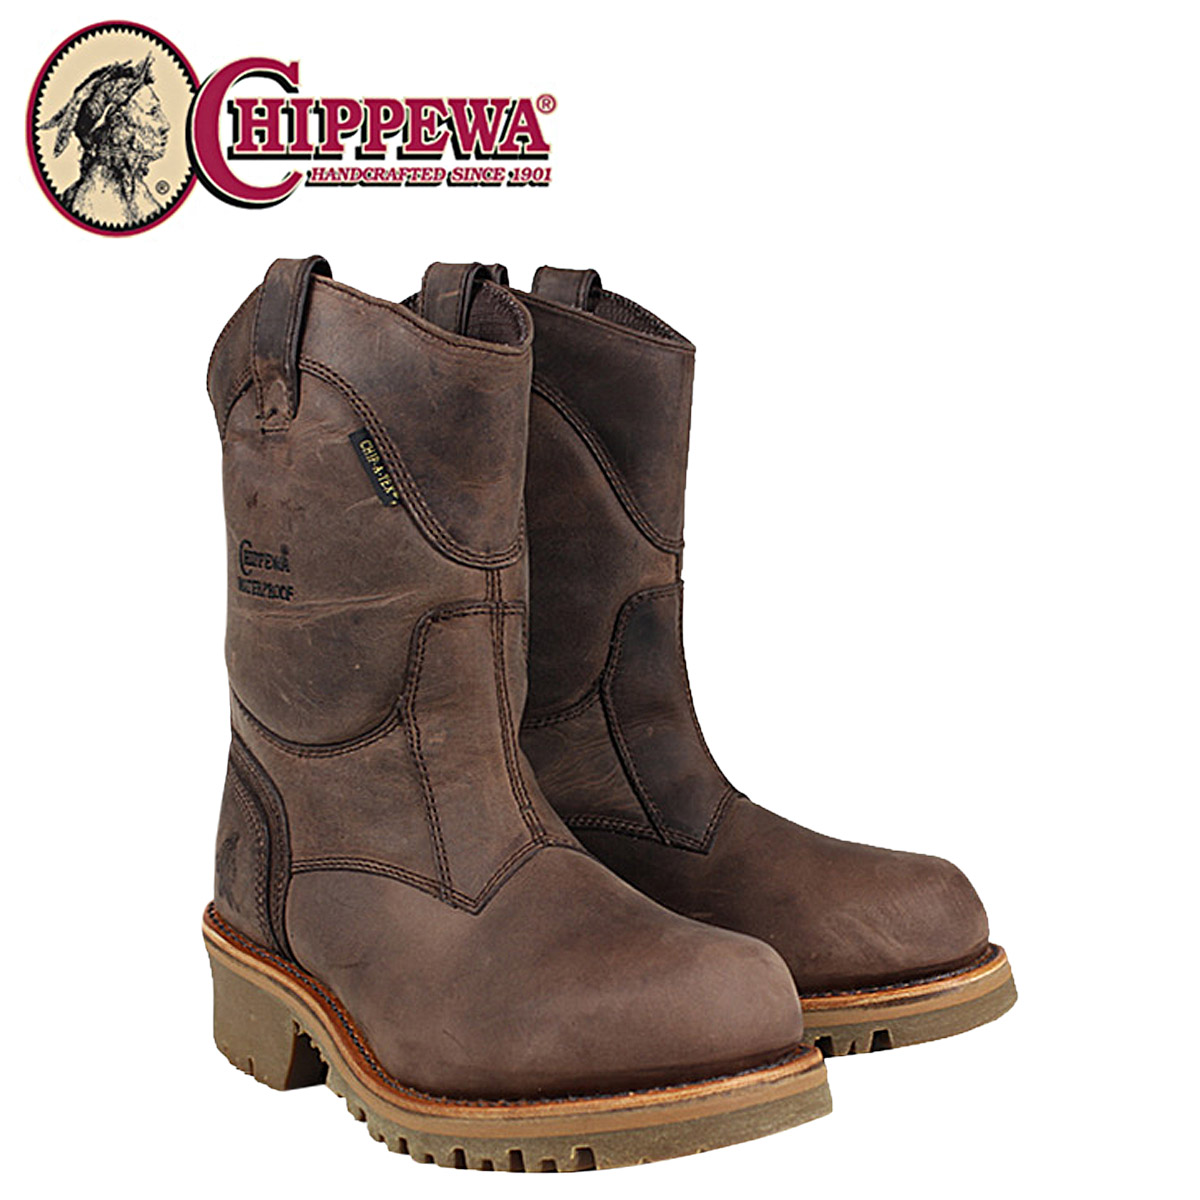 Whats up Sports | Rakuten Global Market: [SOLD OUT]-Chippewa ...